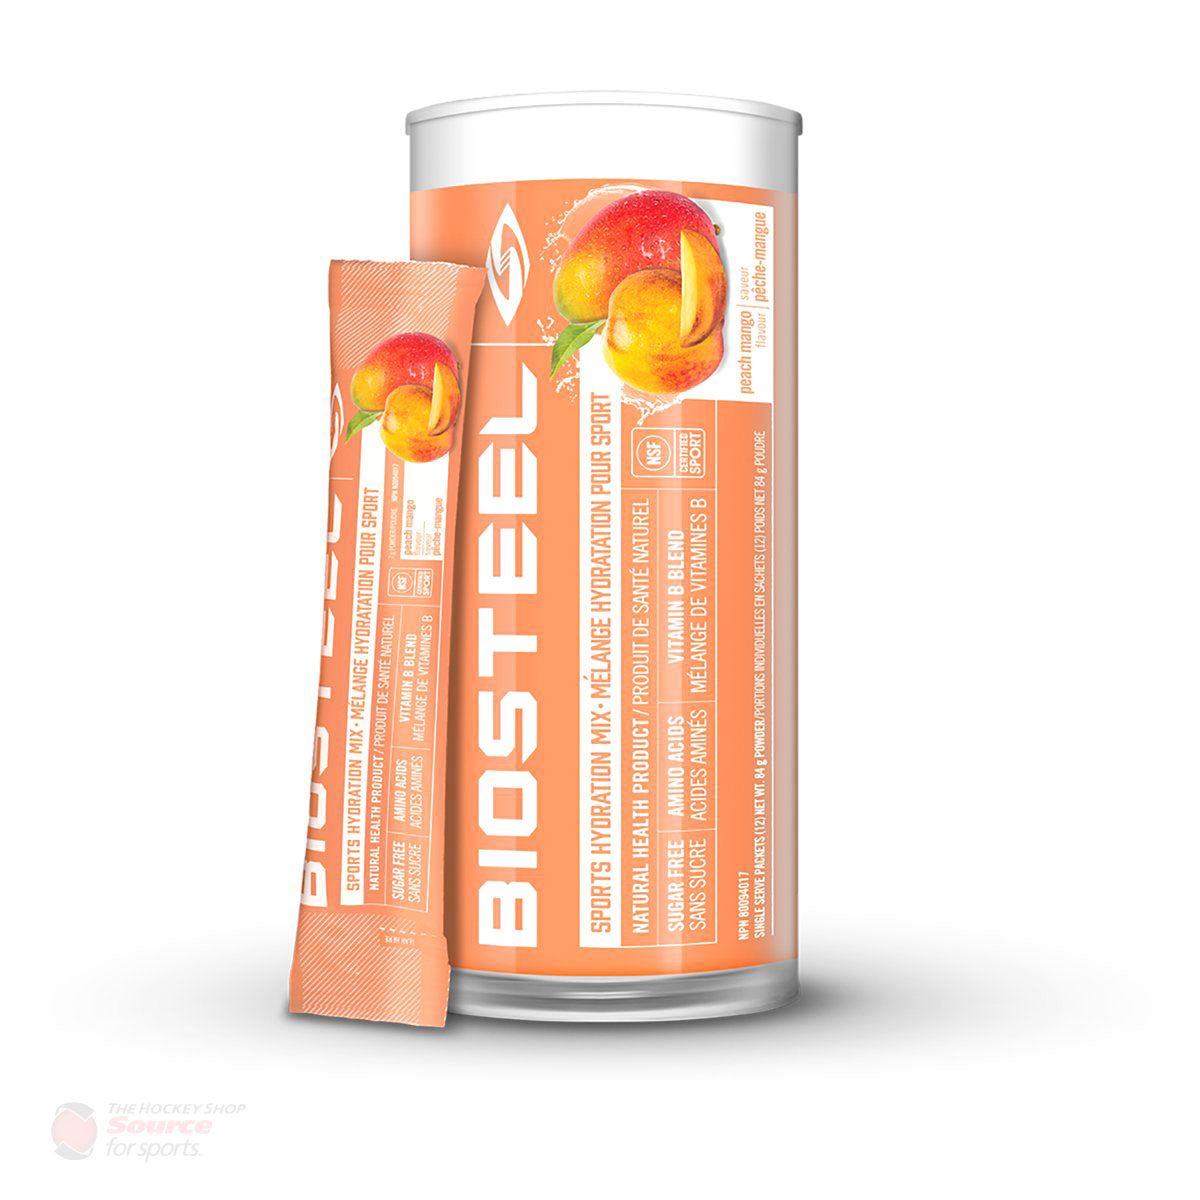 BioSteel High Performance Sports Mix - Peach Mango (12 Packets)